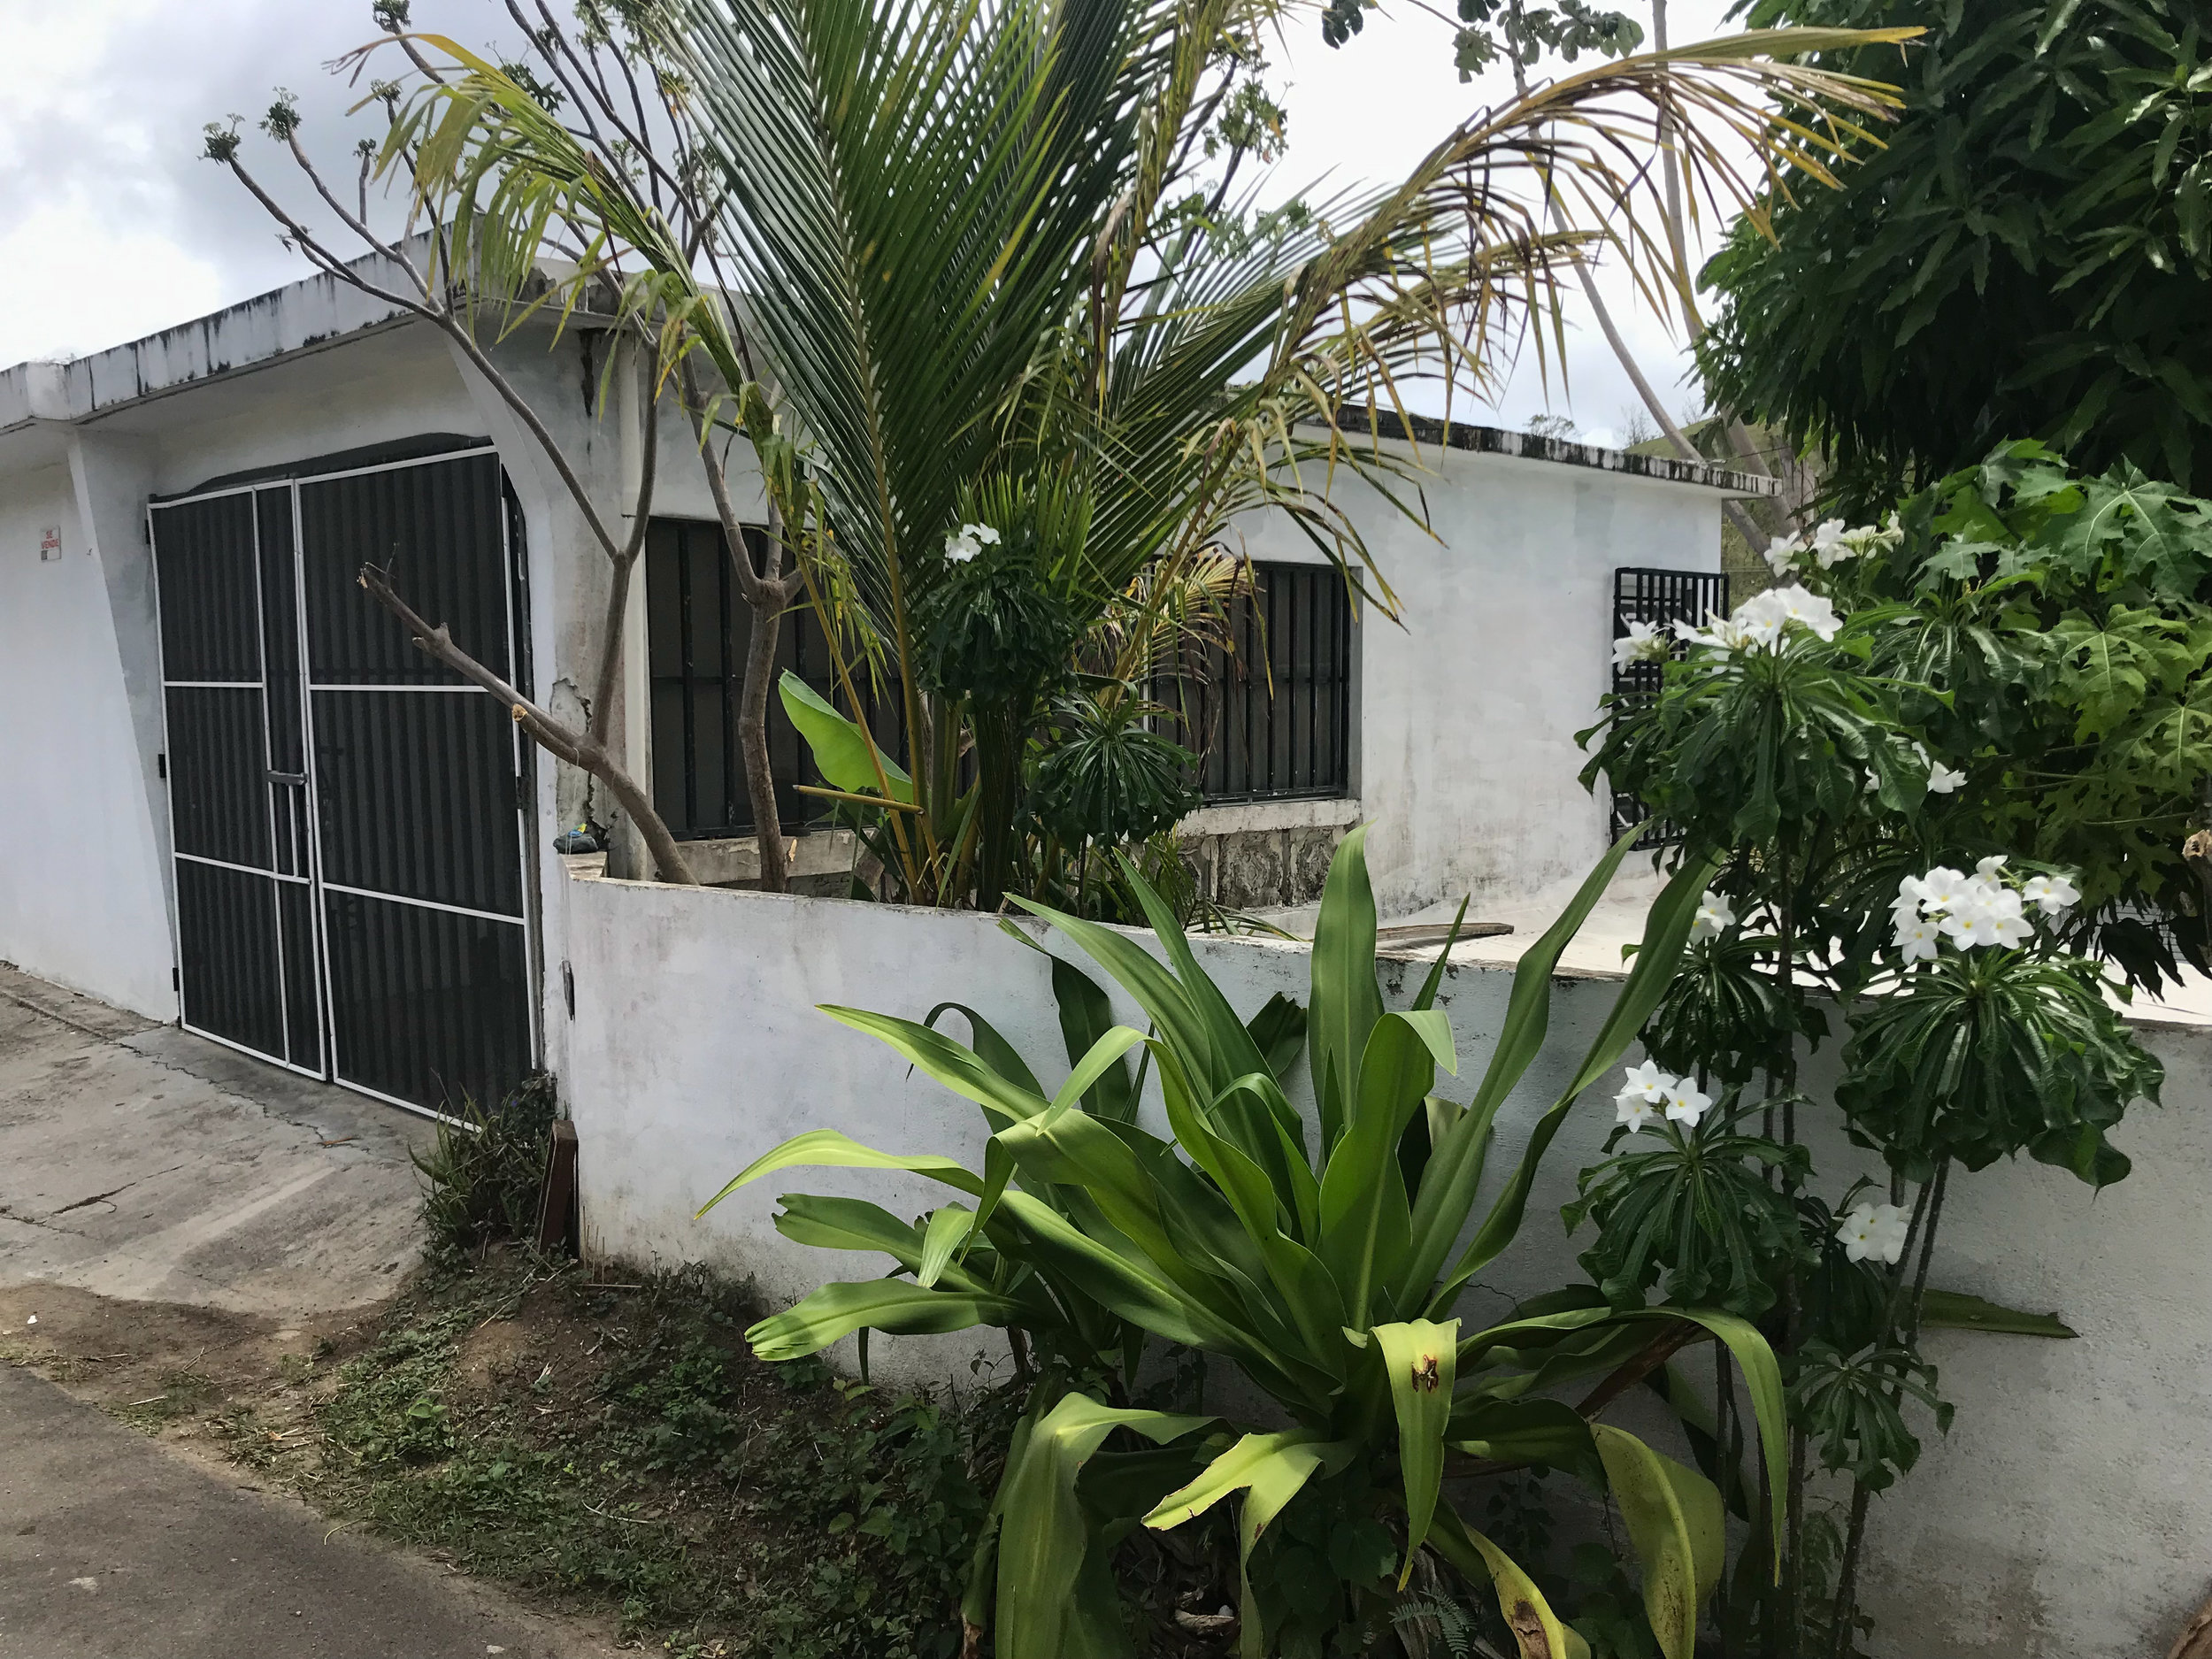 Casa Q, $169,000, Multi Unit, 3 Bed/2 Bath  Villa Borinquen, Vieques, PR